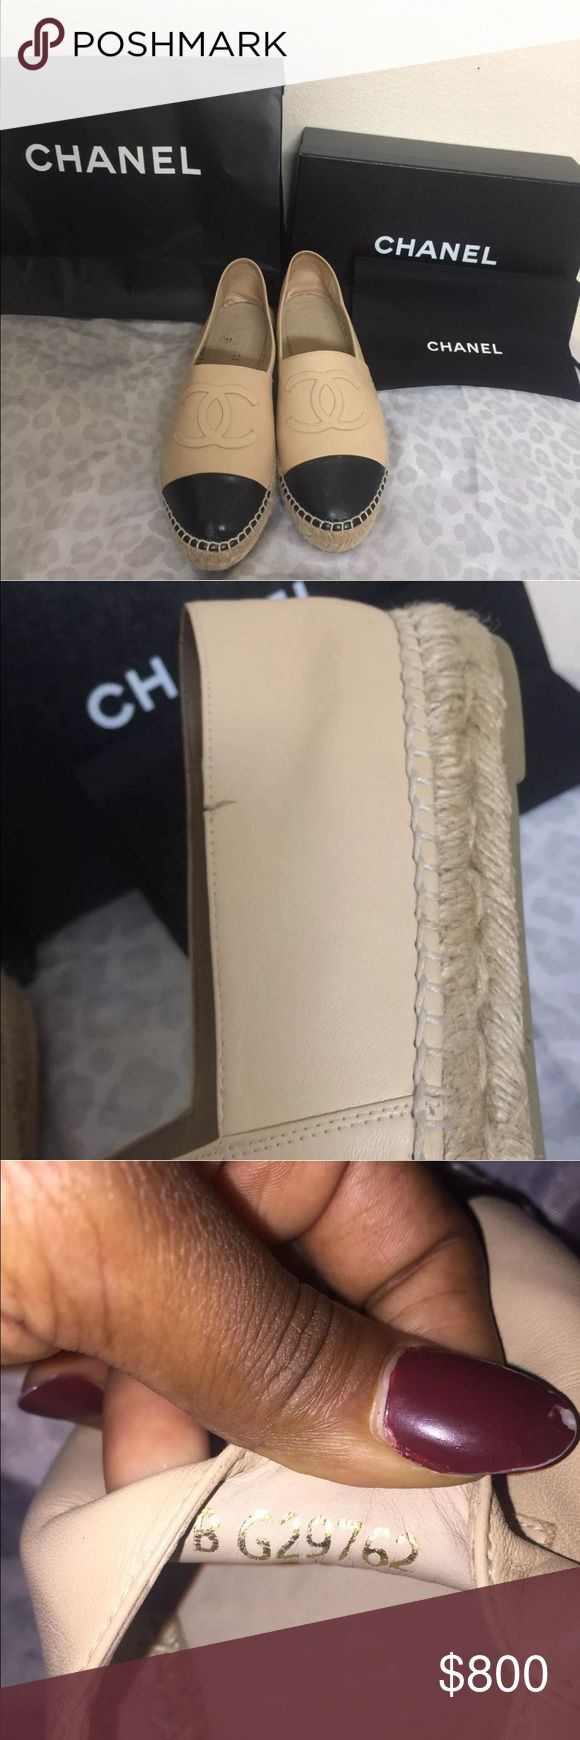 Chanel espadrilles size 40 comes with original box bag and dustbag. has fracture inside. no trades. I SHIP ITEMS BETWEEN 1-2 BUSINESS DAYS. ALL OFFERS MUST BE SENT BY BUTTON I DONT NEGOTIATE IN COMMENTS. CHANEL Shoes Espadrilles